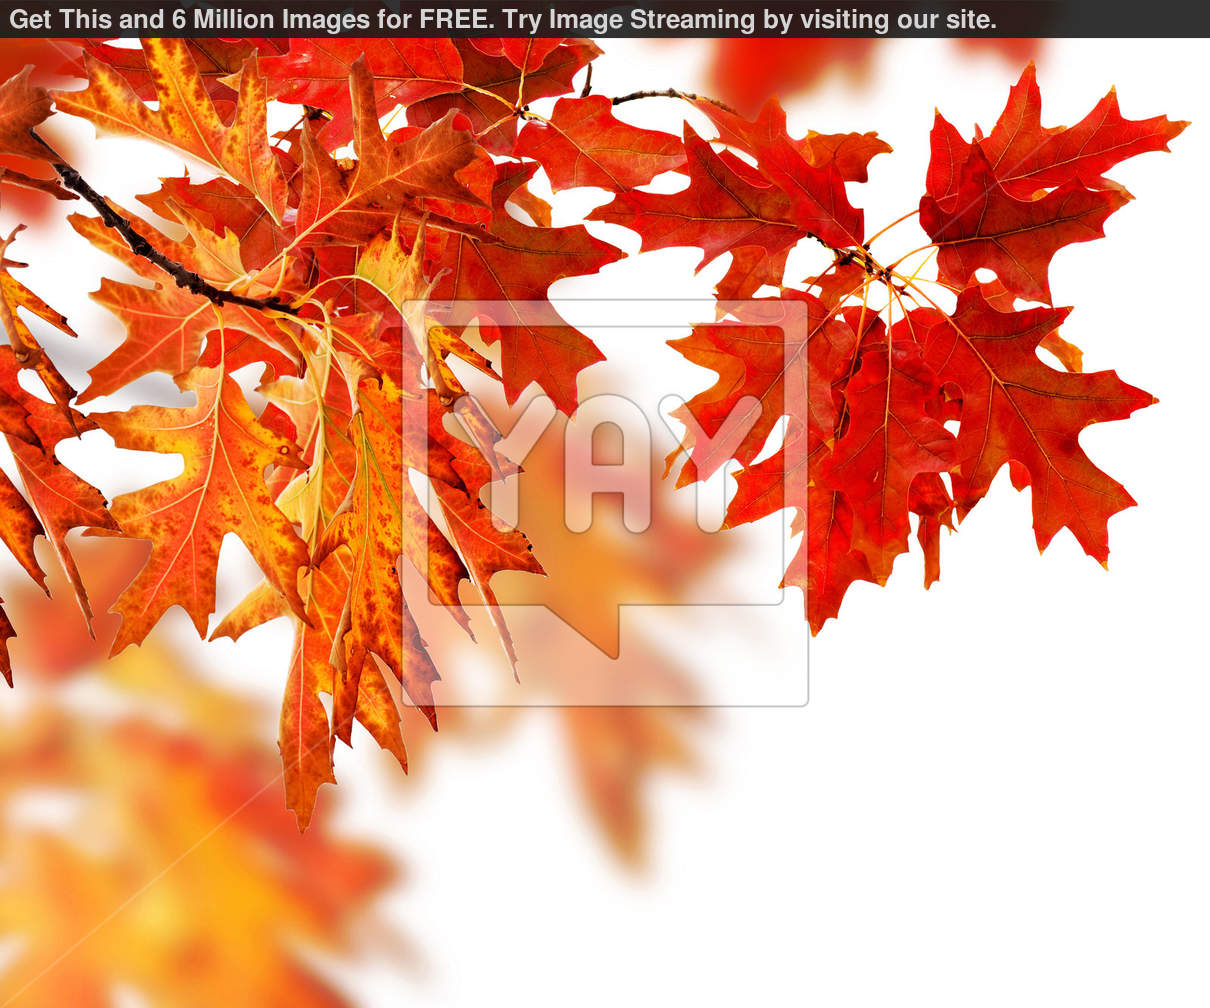 Autumn Leaves Wallpaper Border Save money   get images for 1210x1008